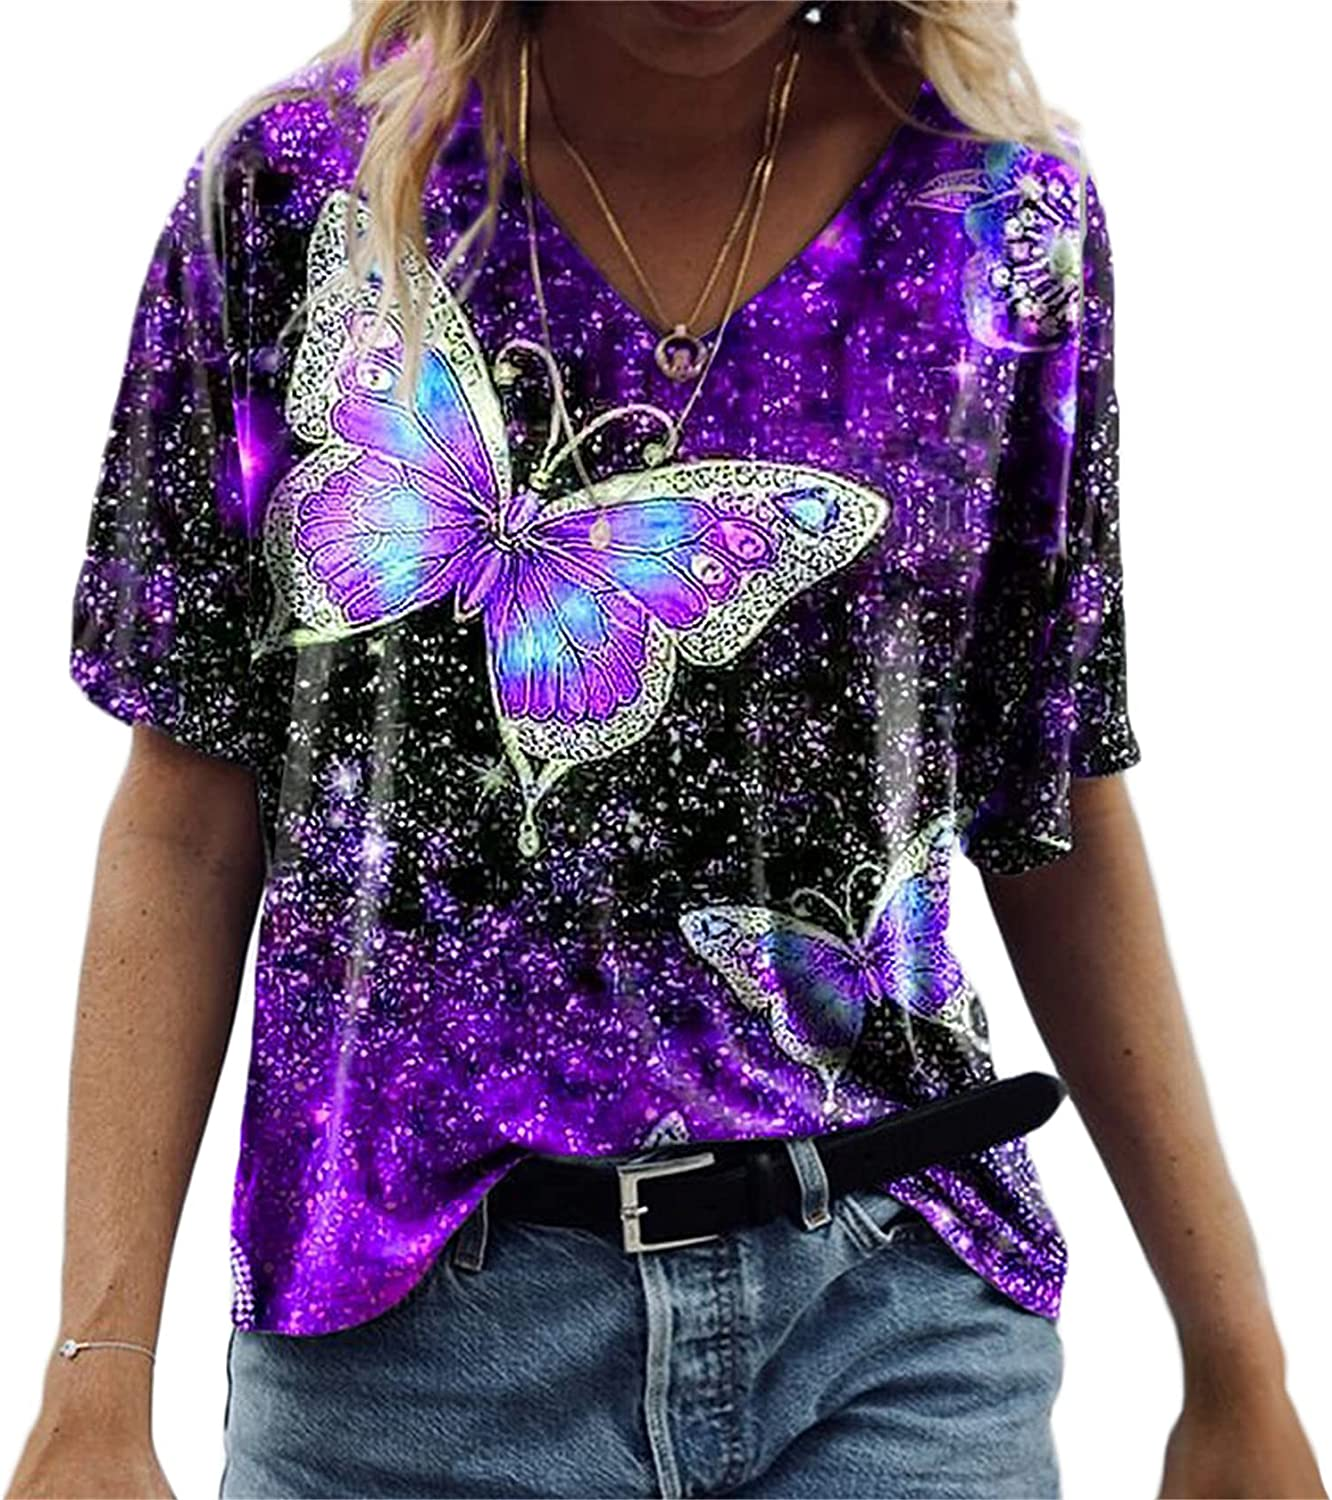 Andongnywell Womens Five-Point Sleeve Floral Butterfly Print Tunic Tops Casual Loose Fitting Shirts Blouses Tunics